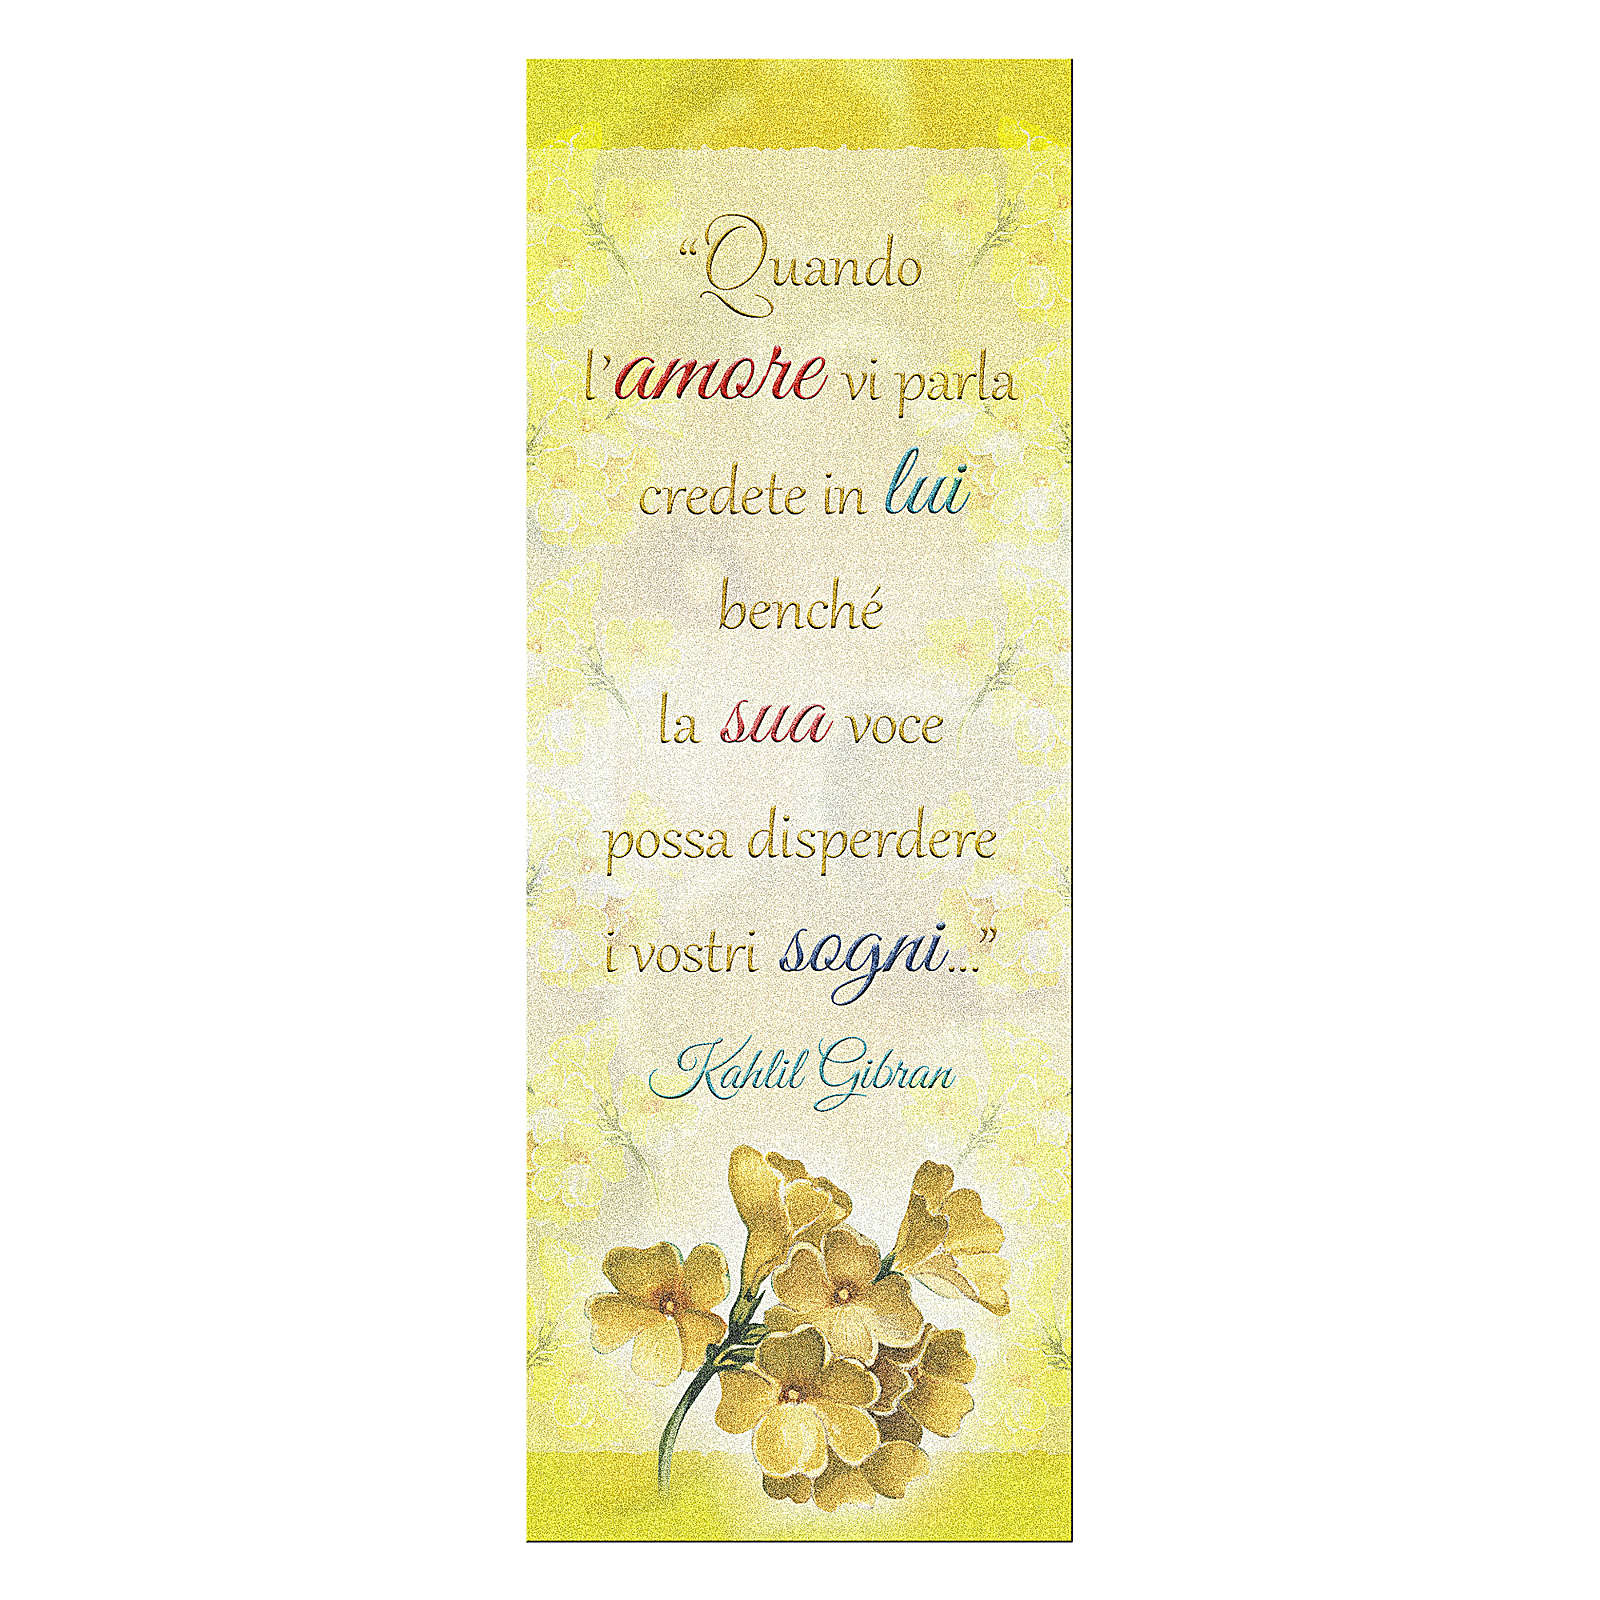 Bookmark in pearl cardboard with branch in bloom image and Kahlil Gibran sentence 15x5 cm 4